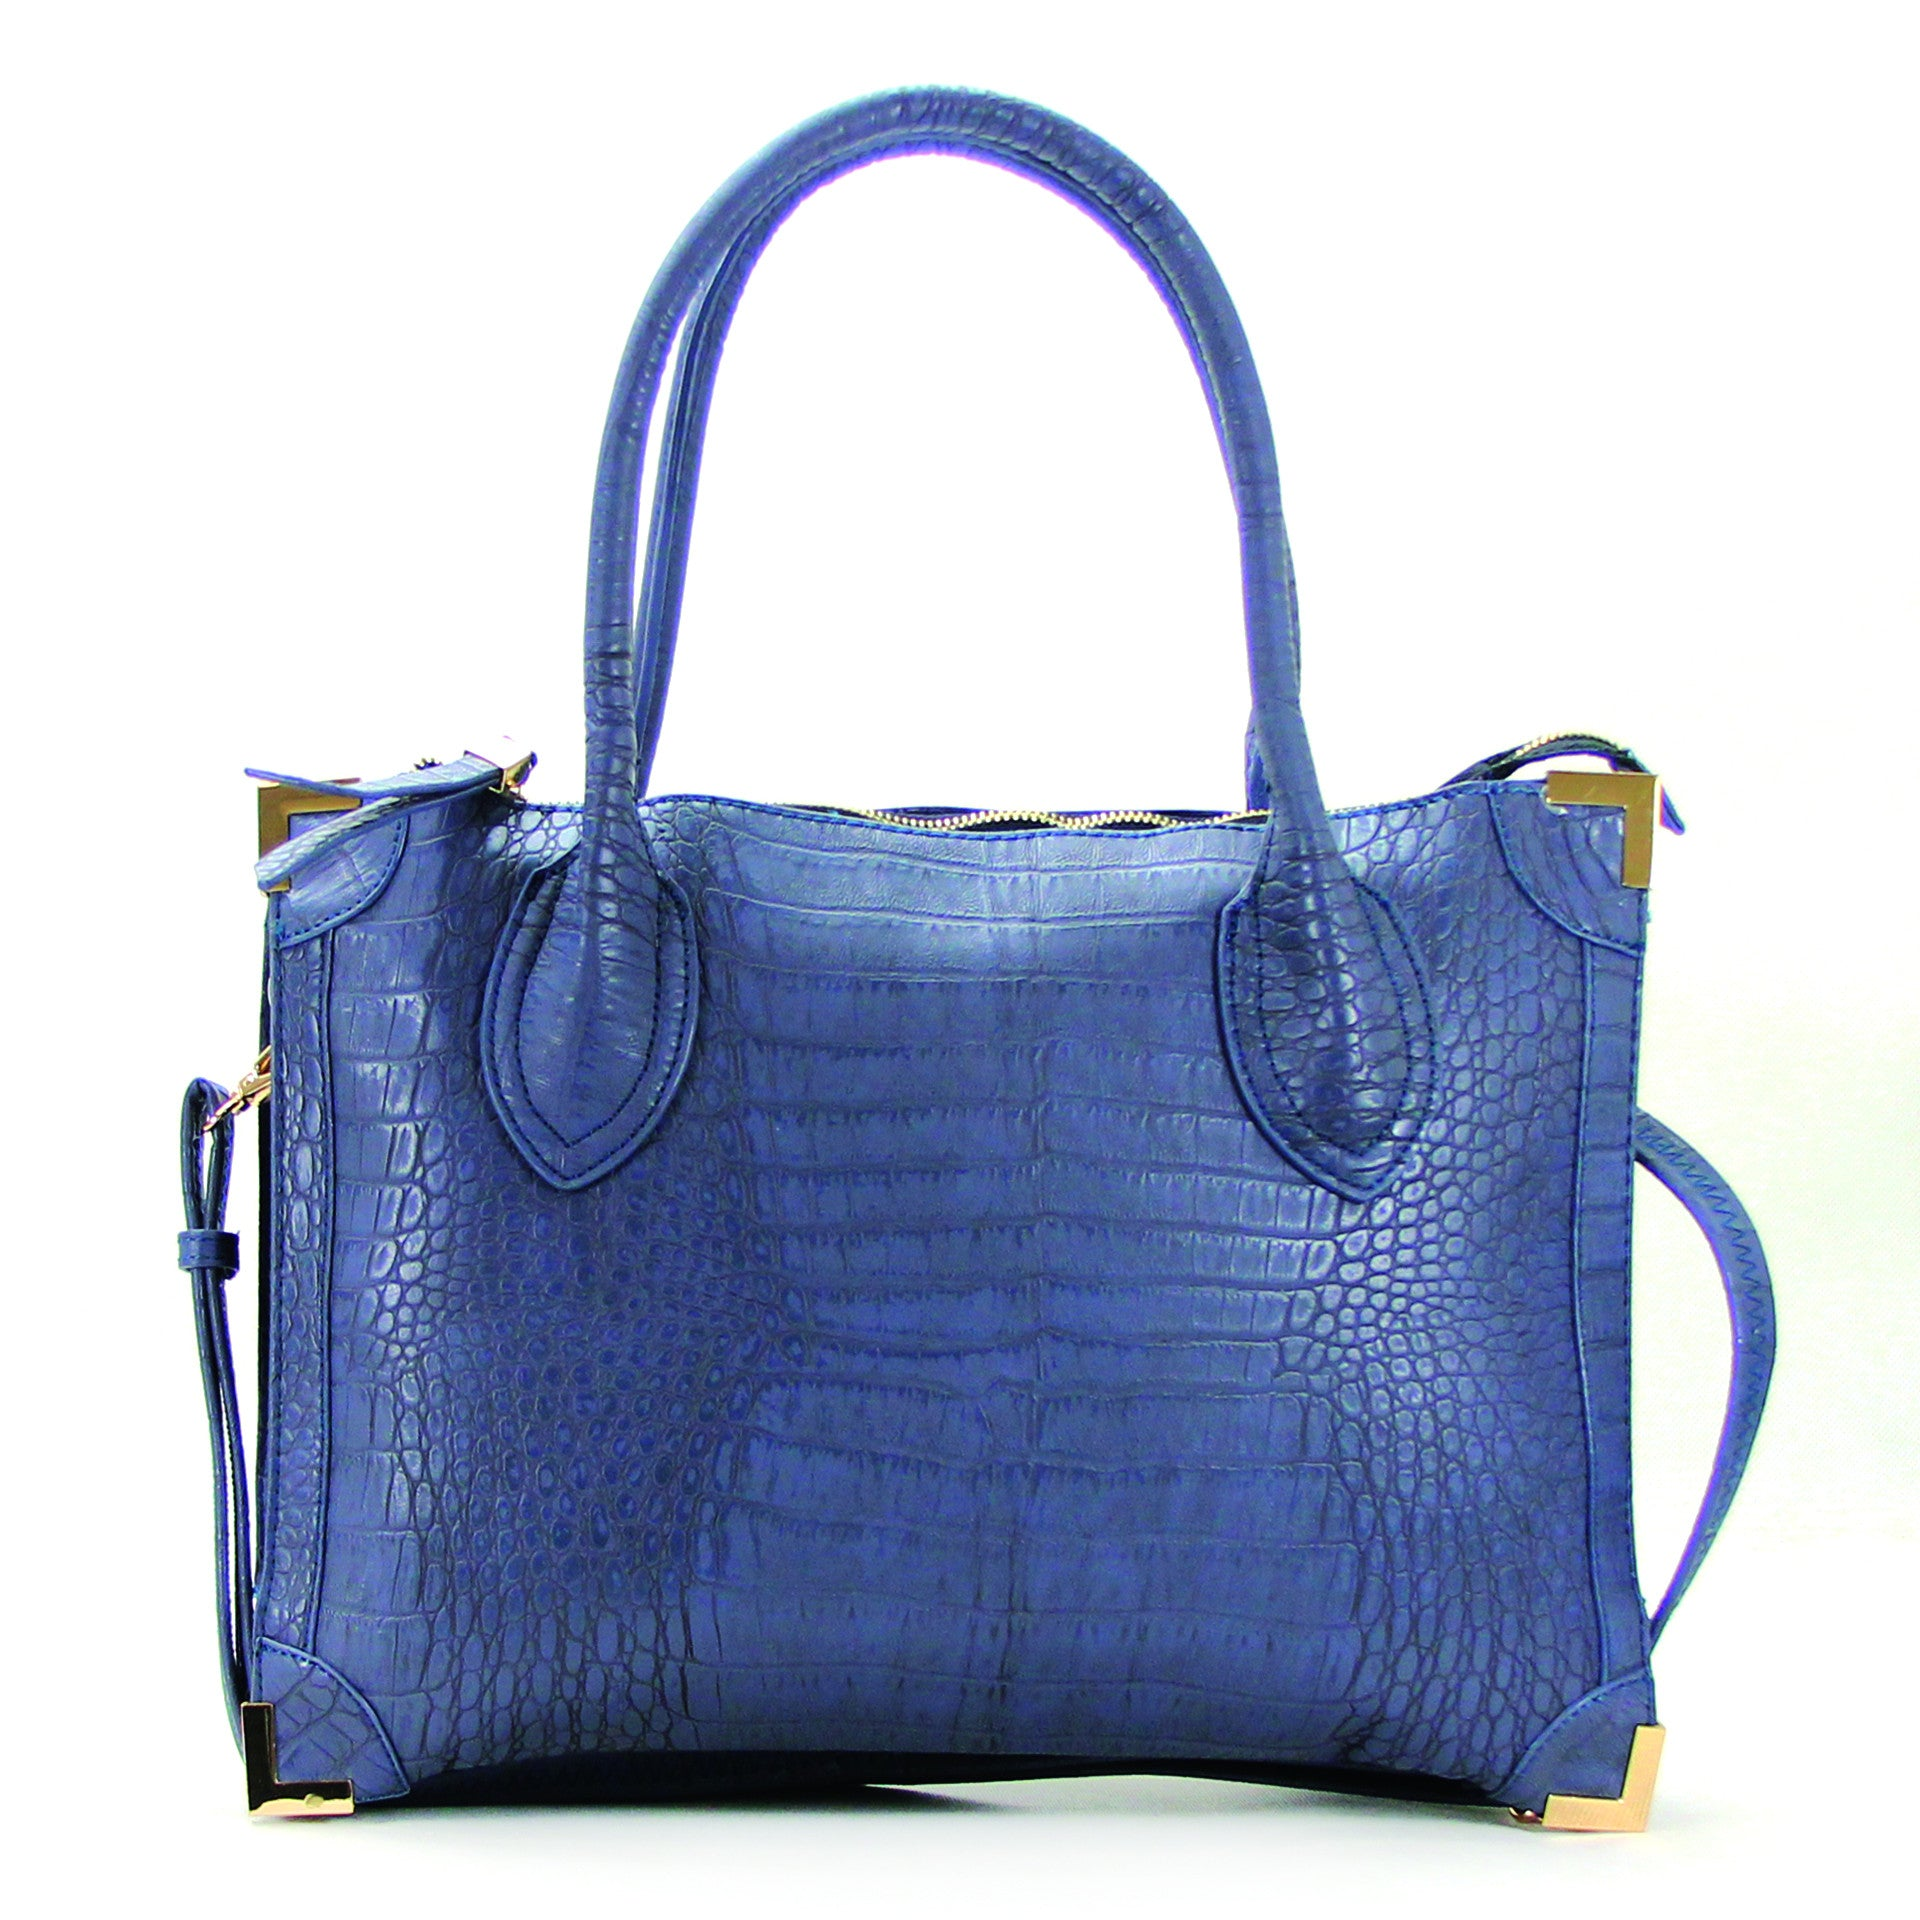 Trendy Classic Snake Print Purse Handbag Tote Bag  - Blue - Pop Fashion